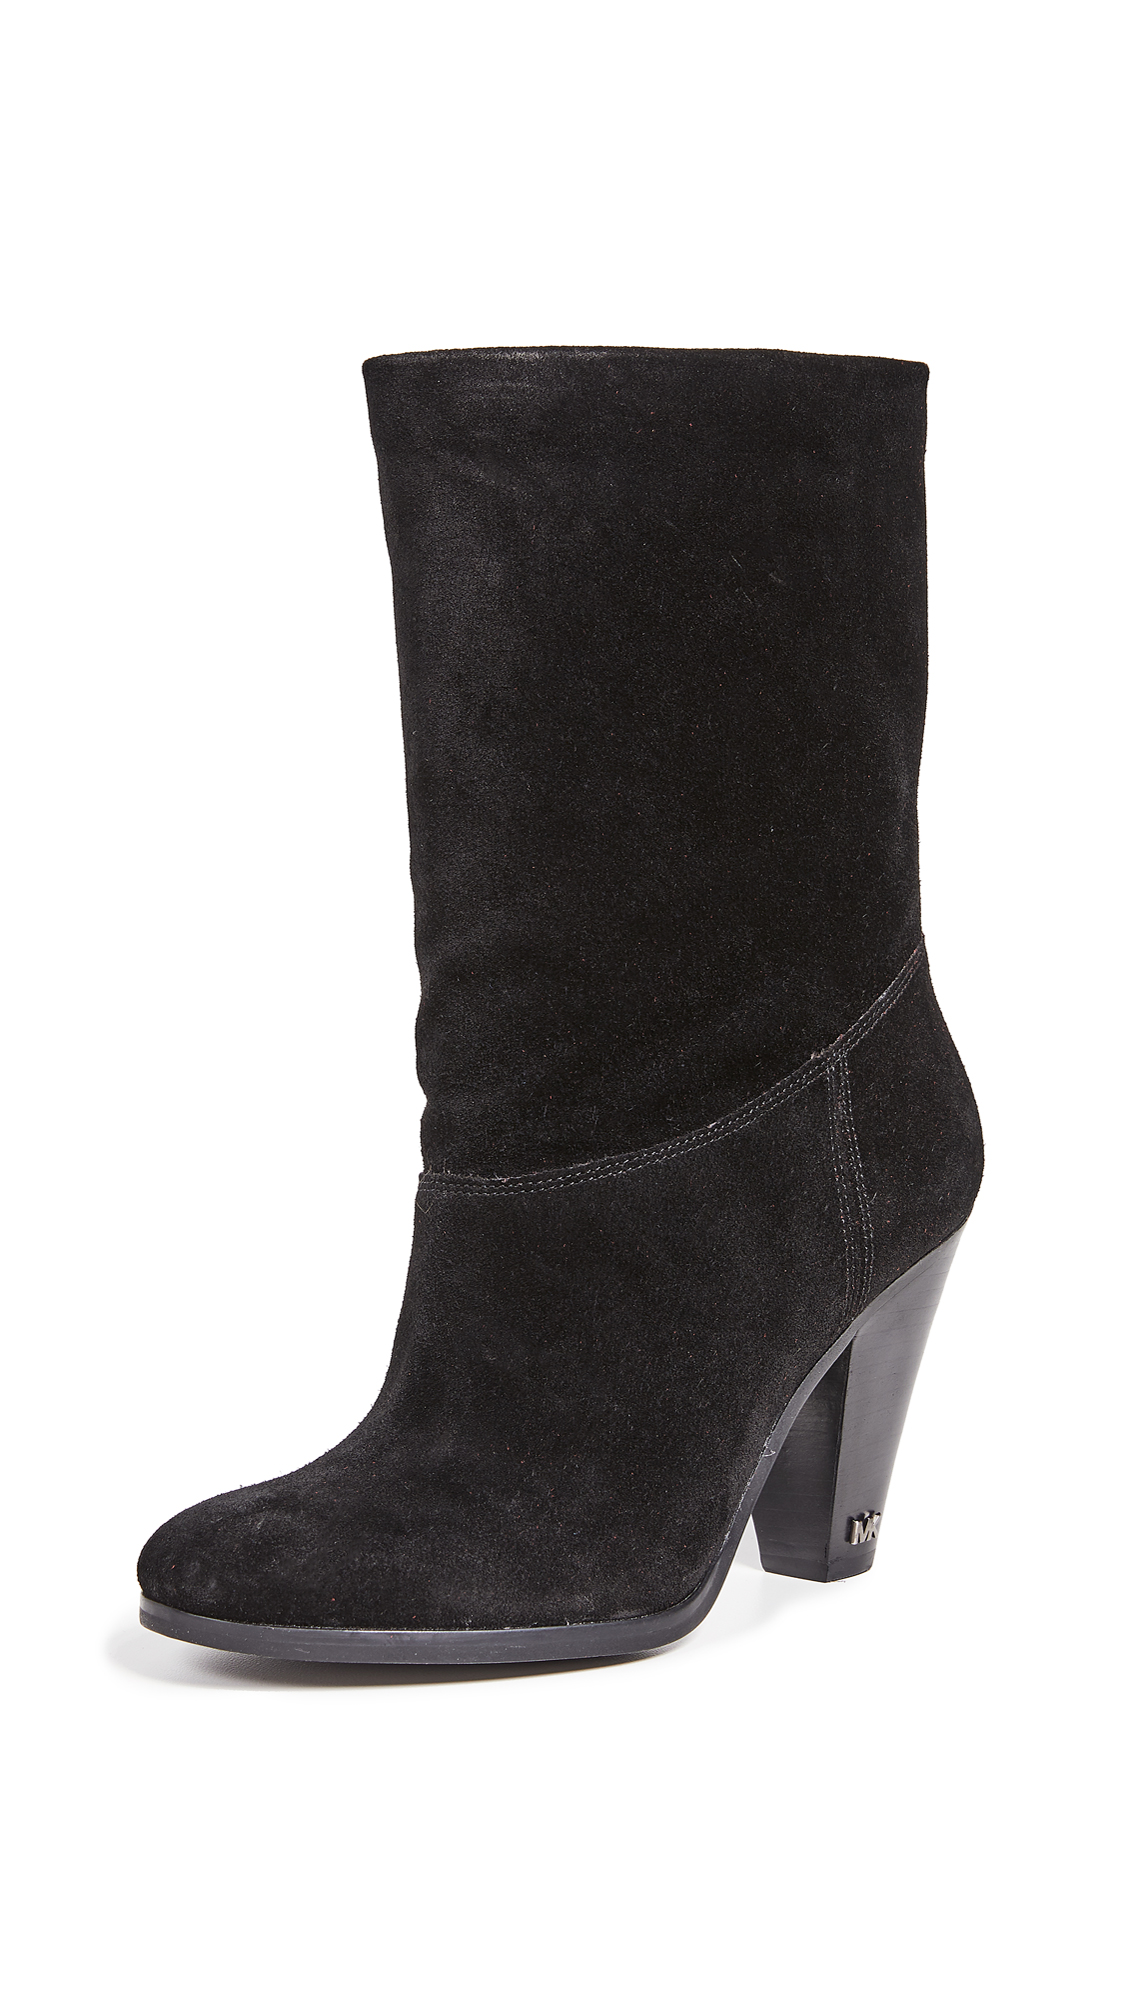 MICHAEL Michael Kors Divia Mid Shaft Booties - Black